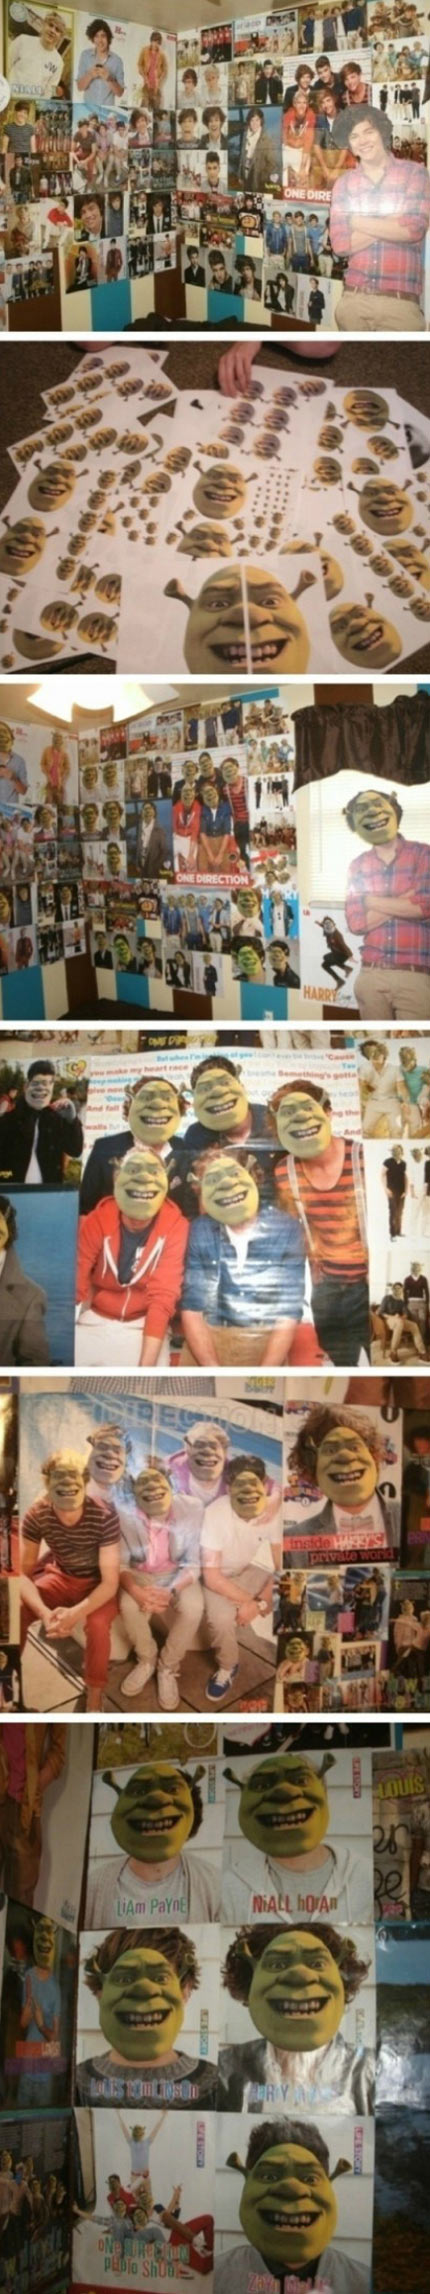 funny-One-direction-face-Shrek